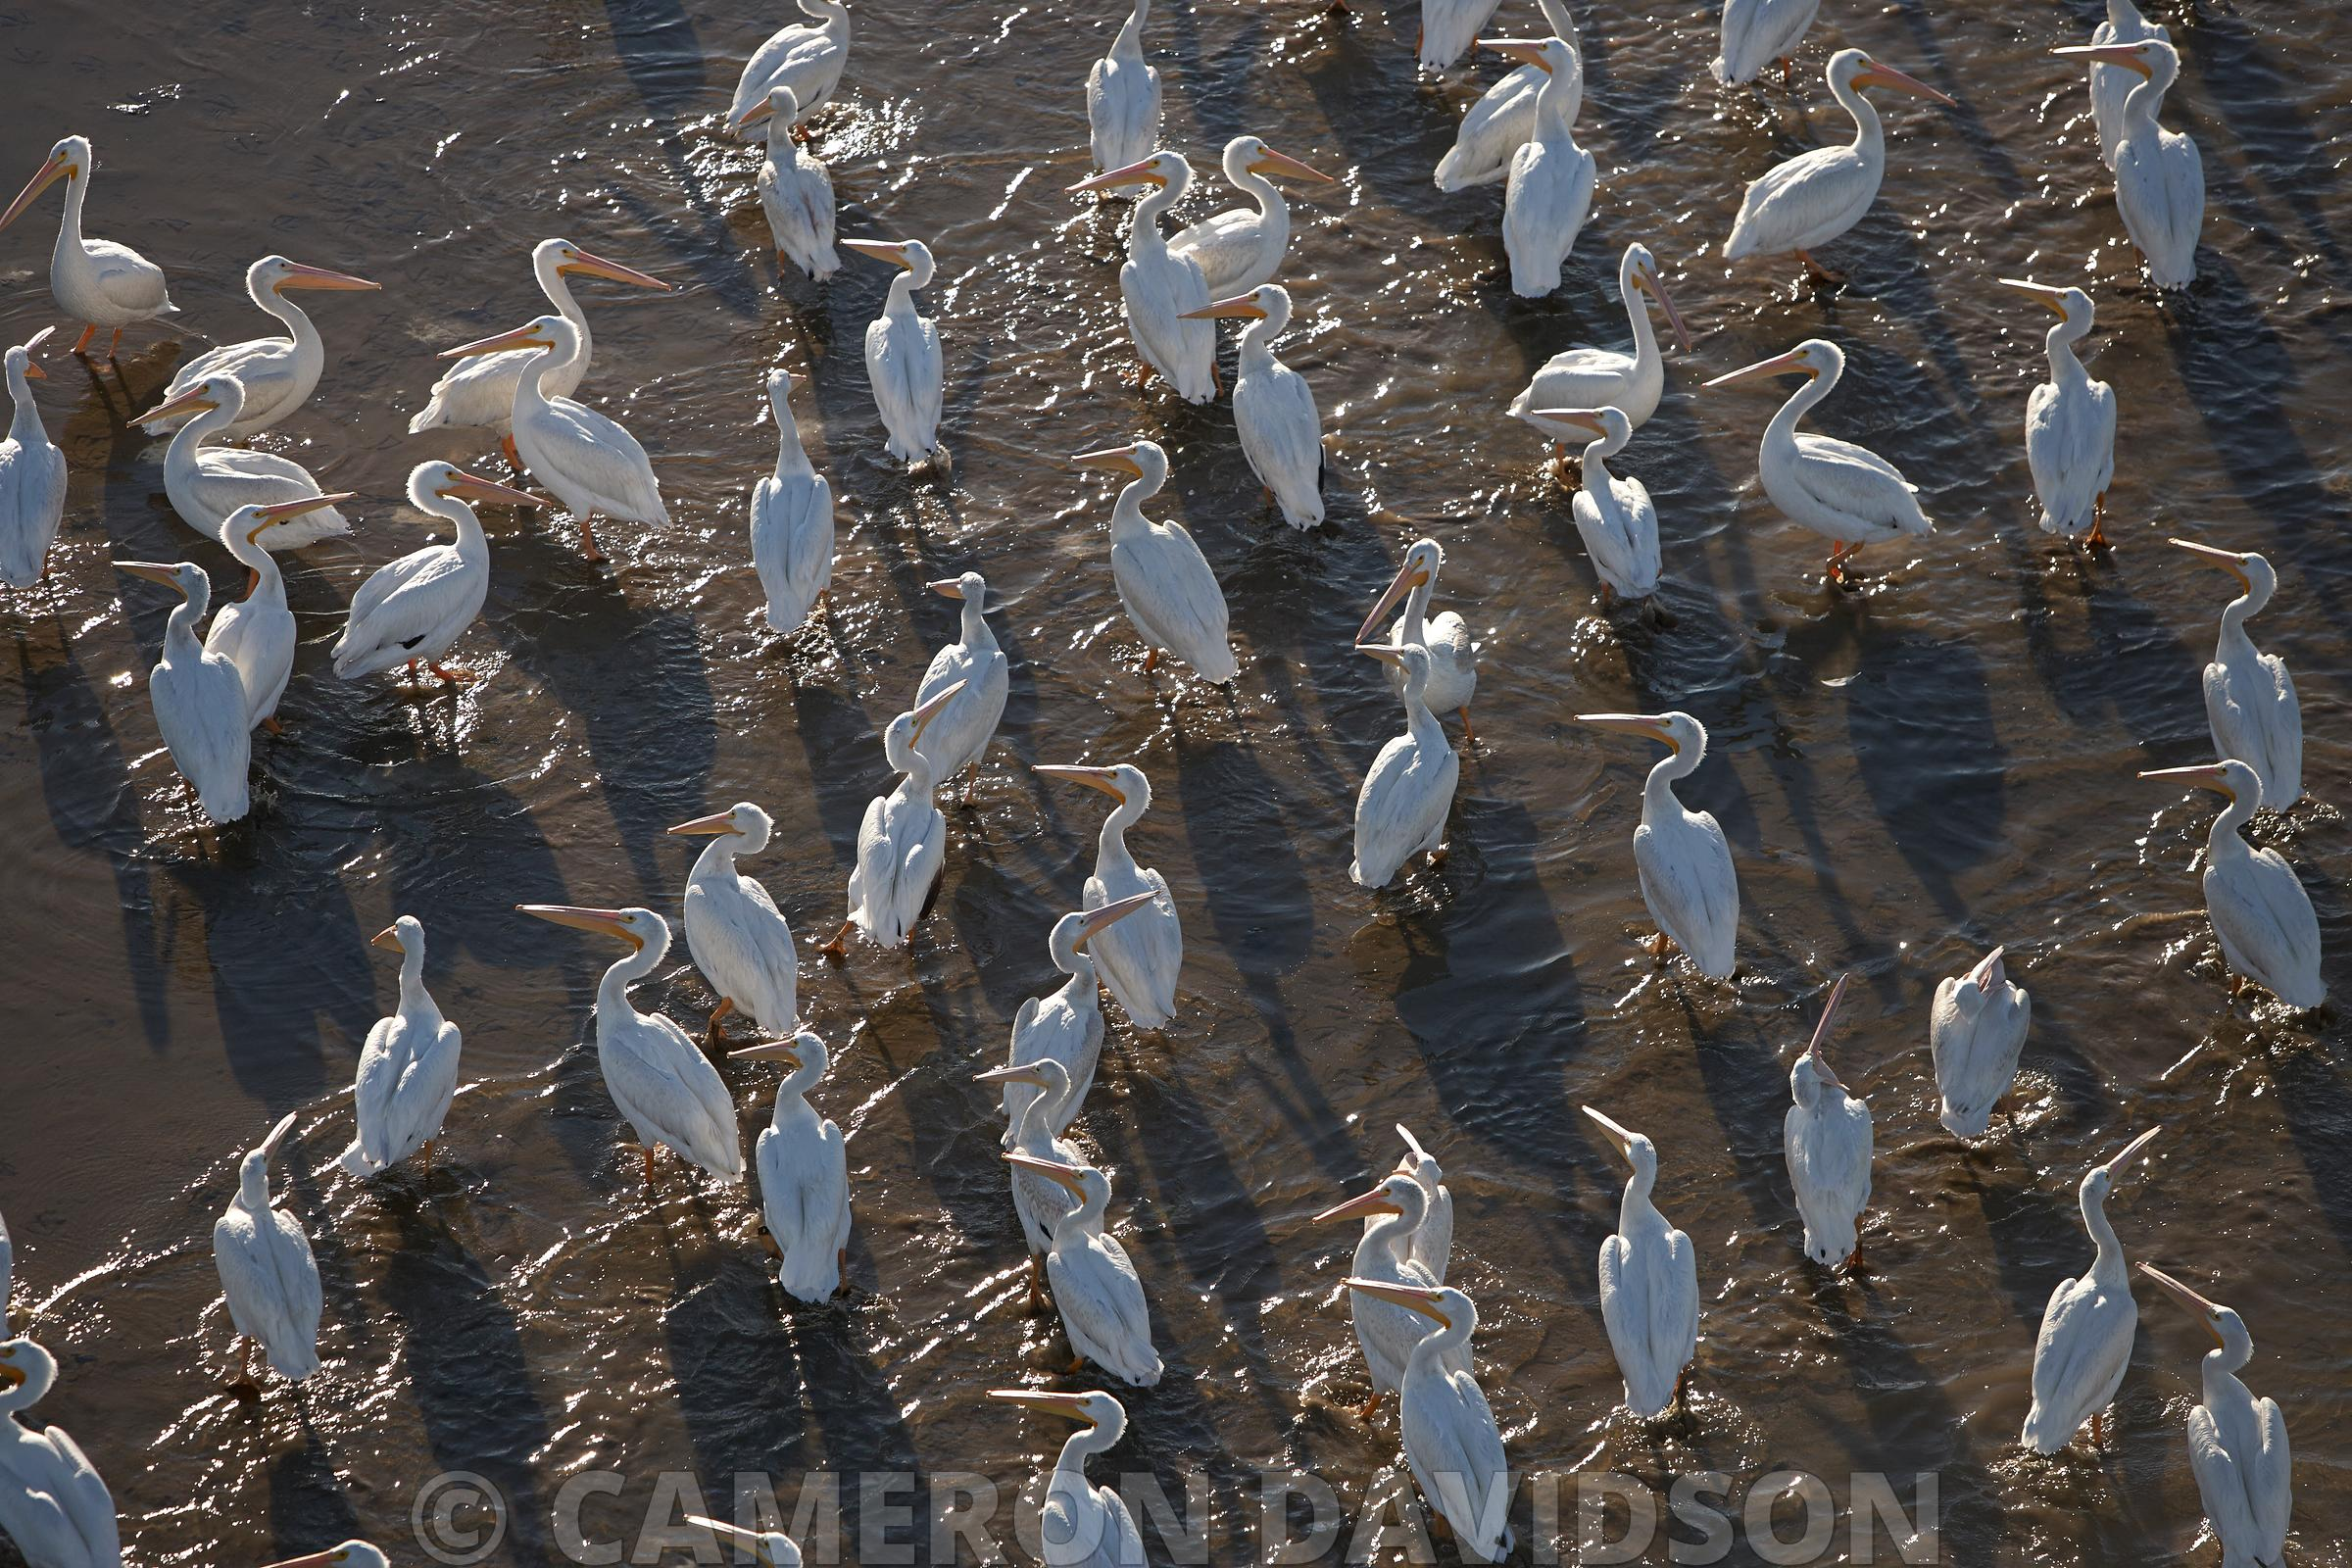 Aerial Photograph of Pelicans in the Atchafalaya Delta State Wildlife Management area